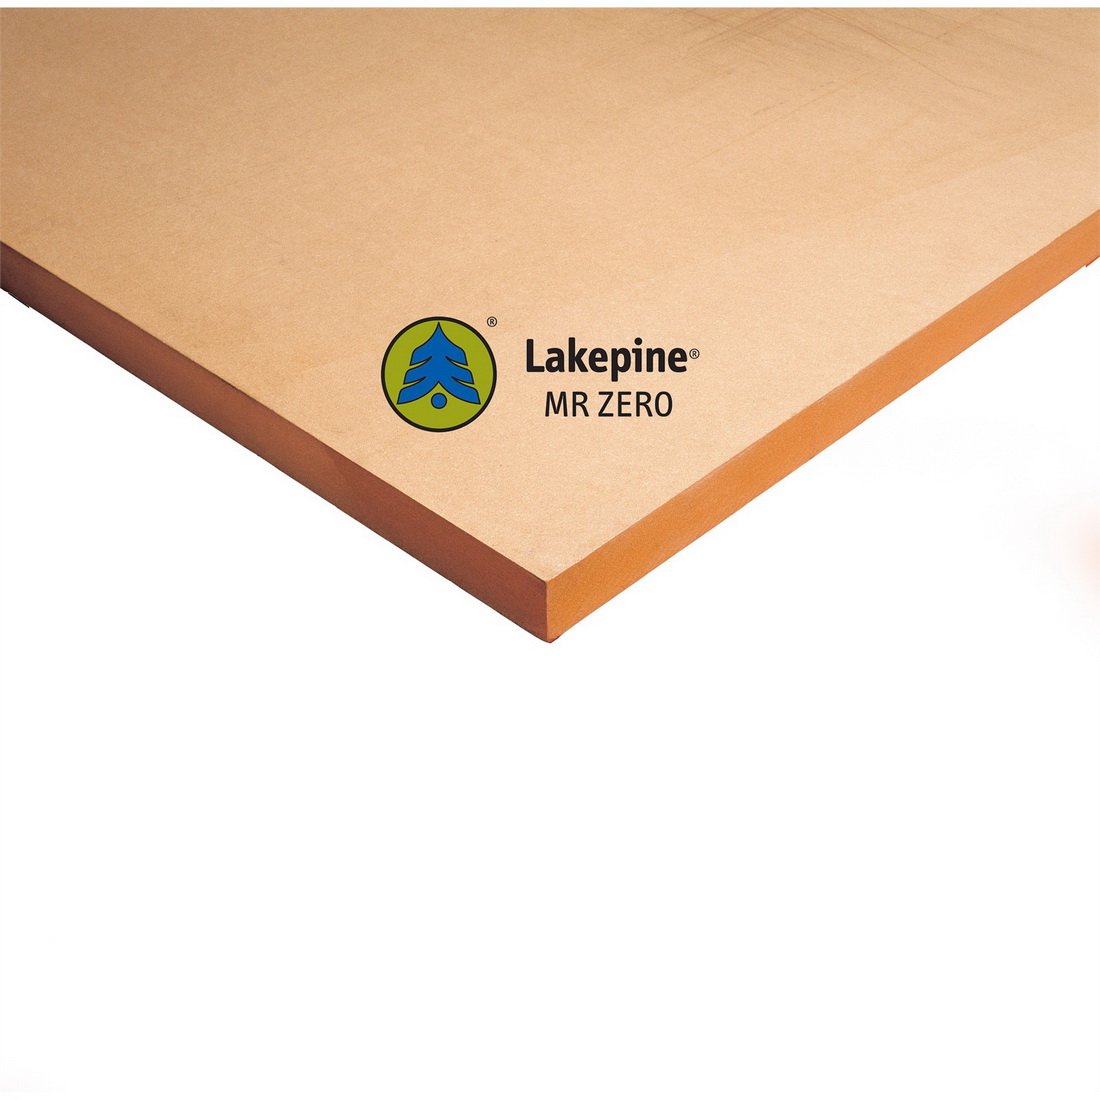 Lakepine Light Panel 2464 x 1245 x 18mm MDF 8605016